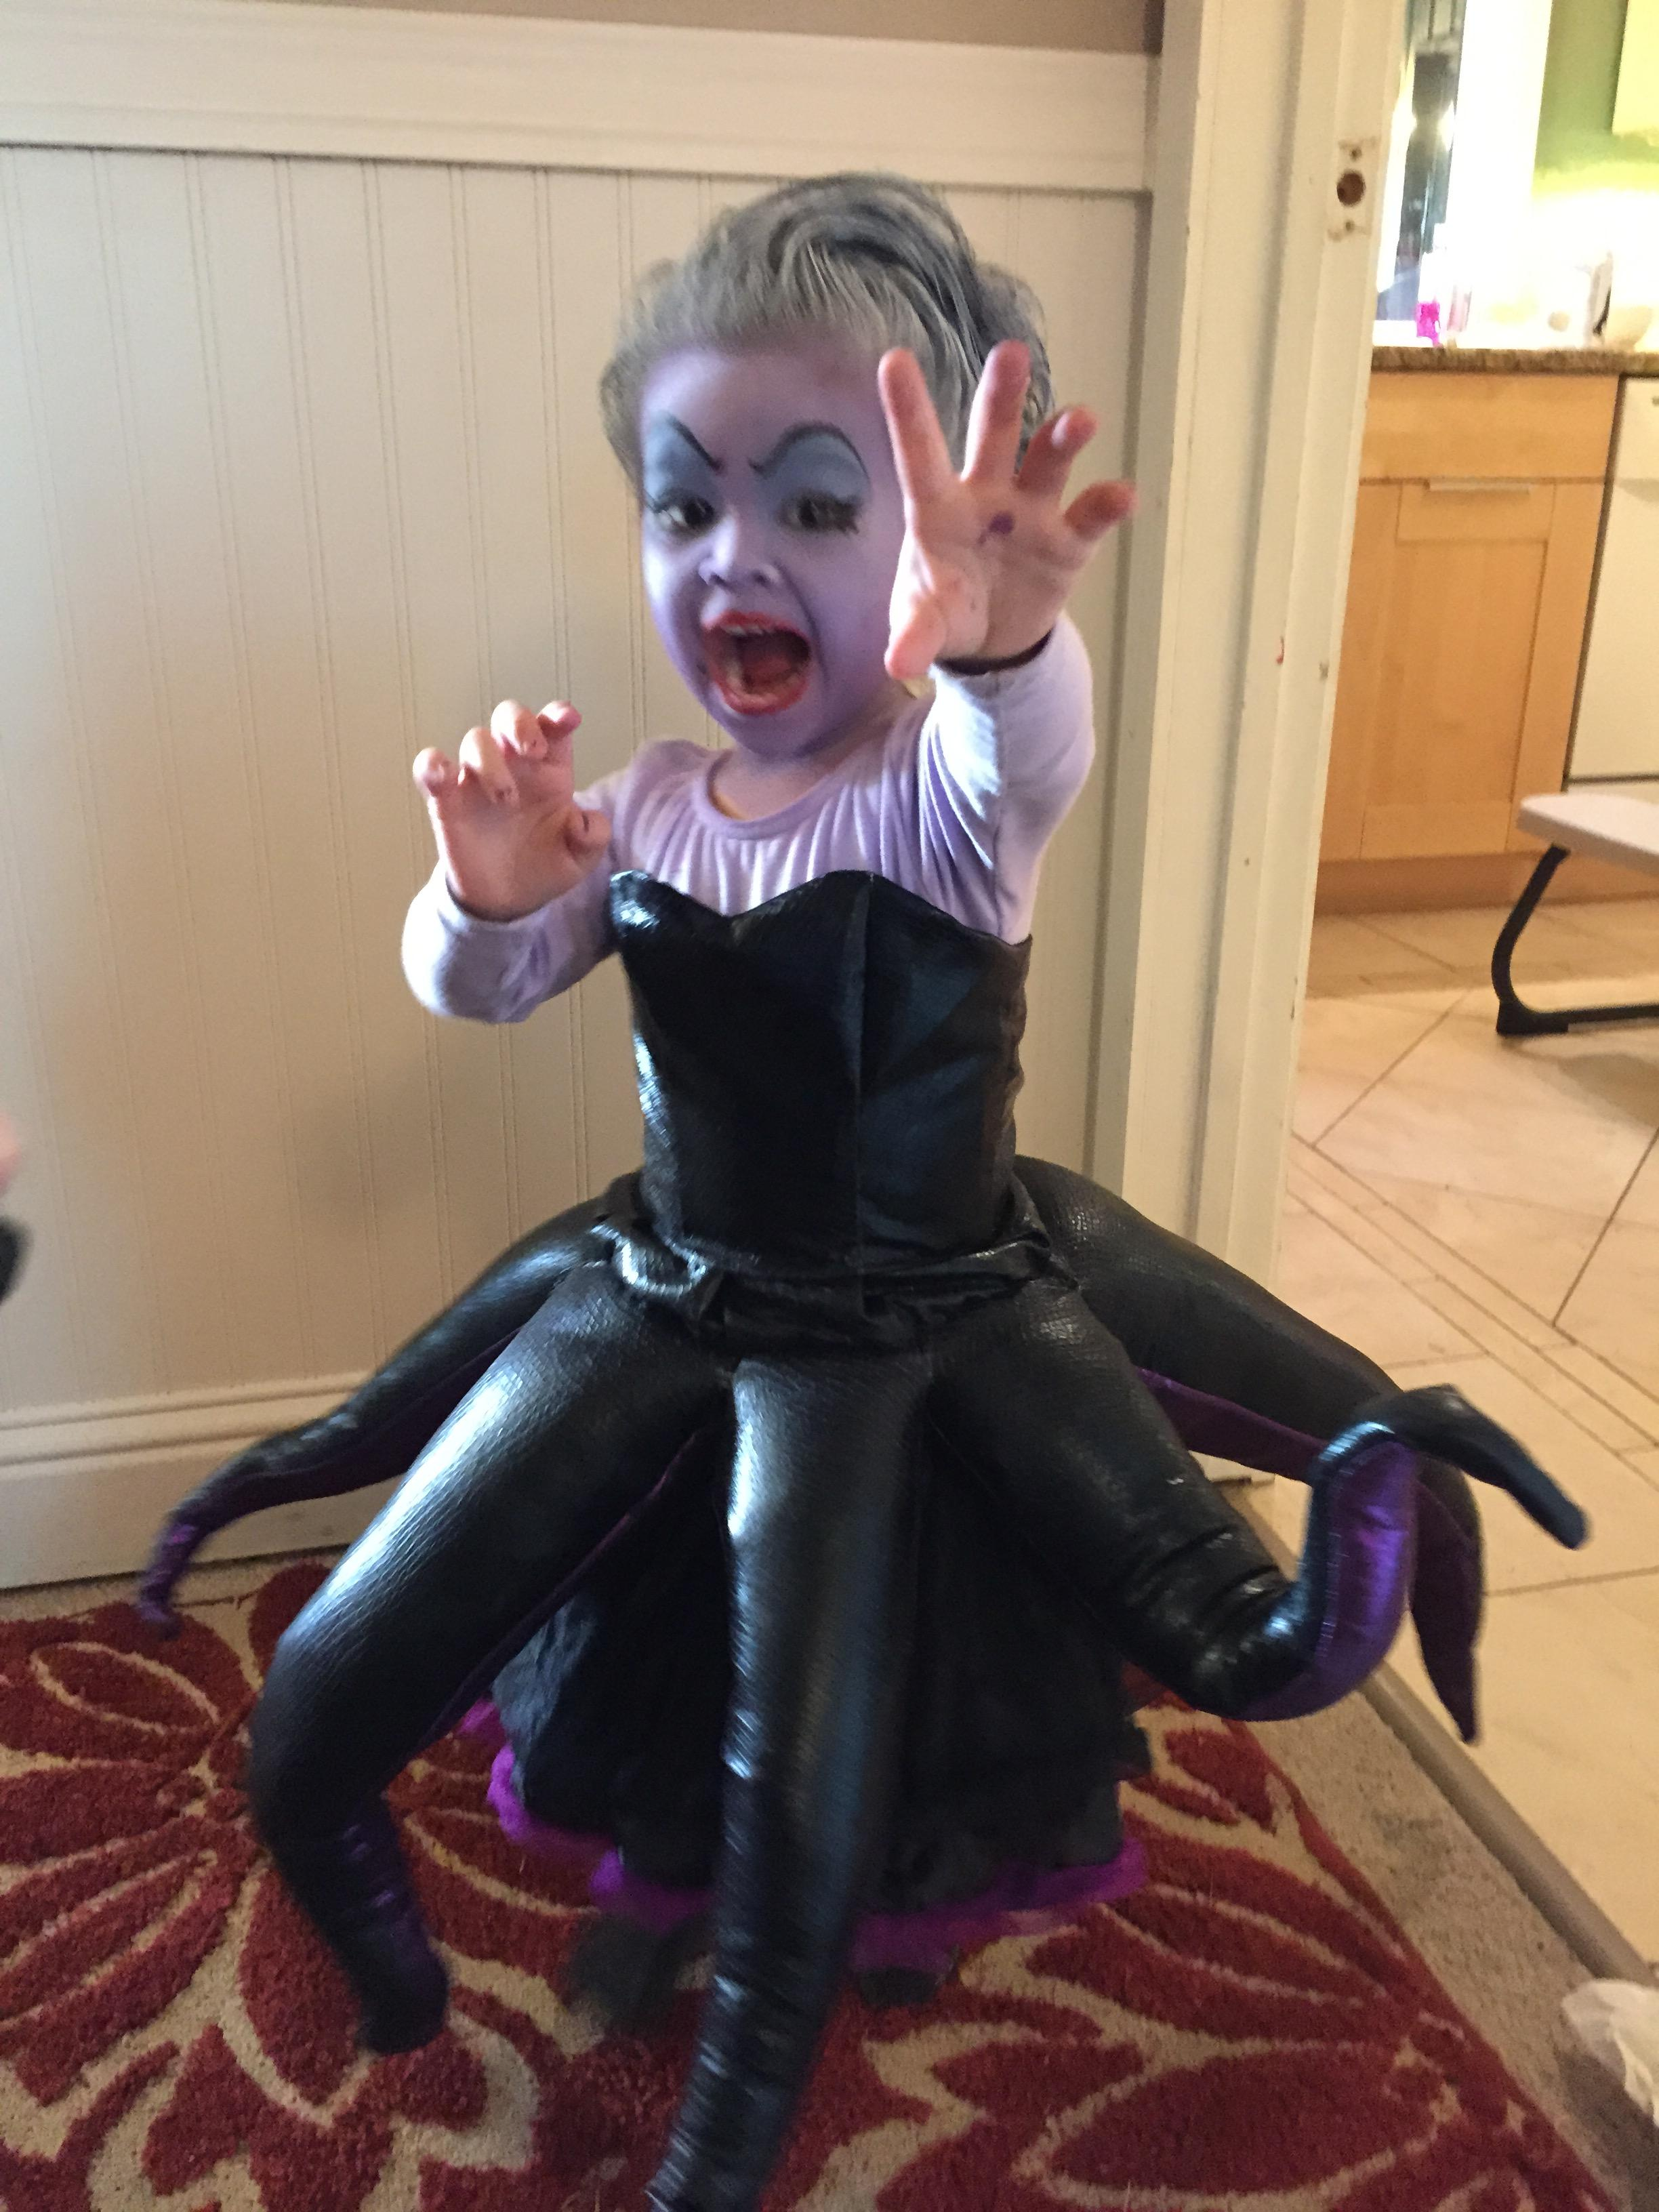 21 - The Very Best Costumes From Halloween 2015